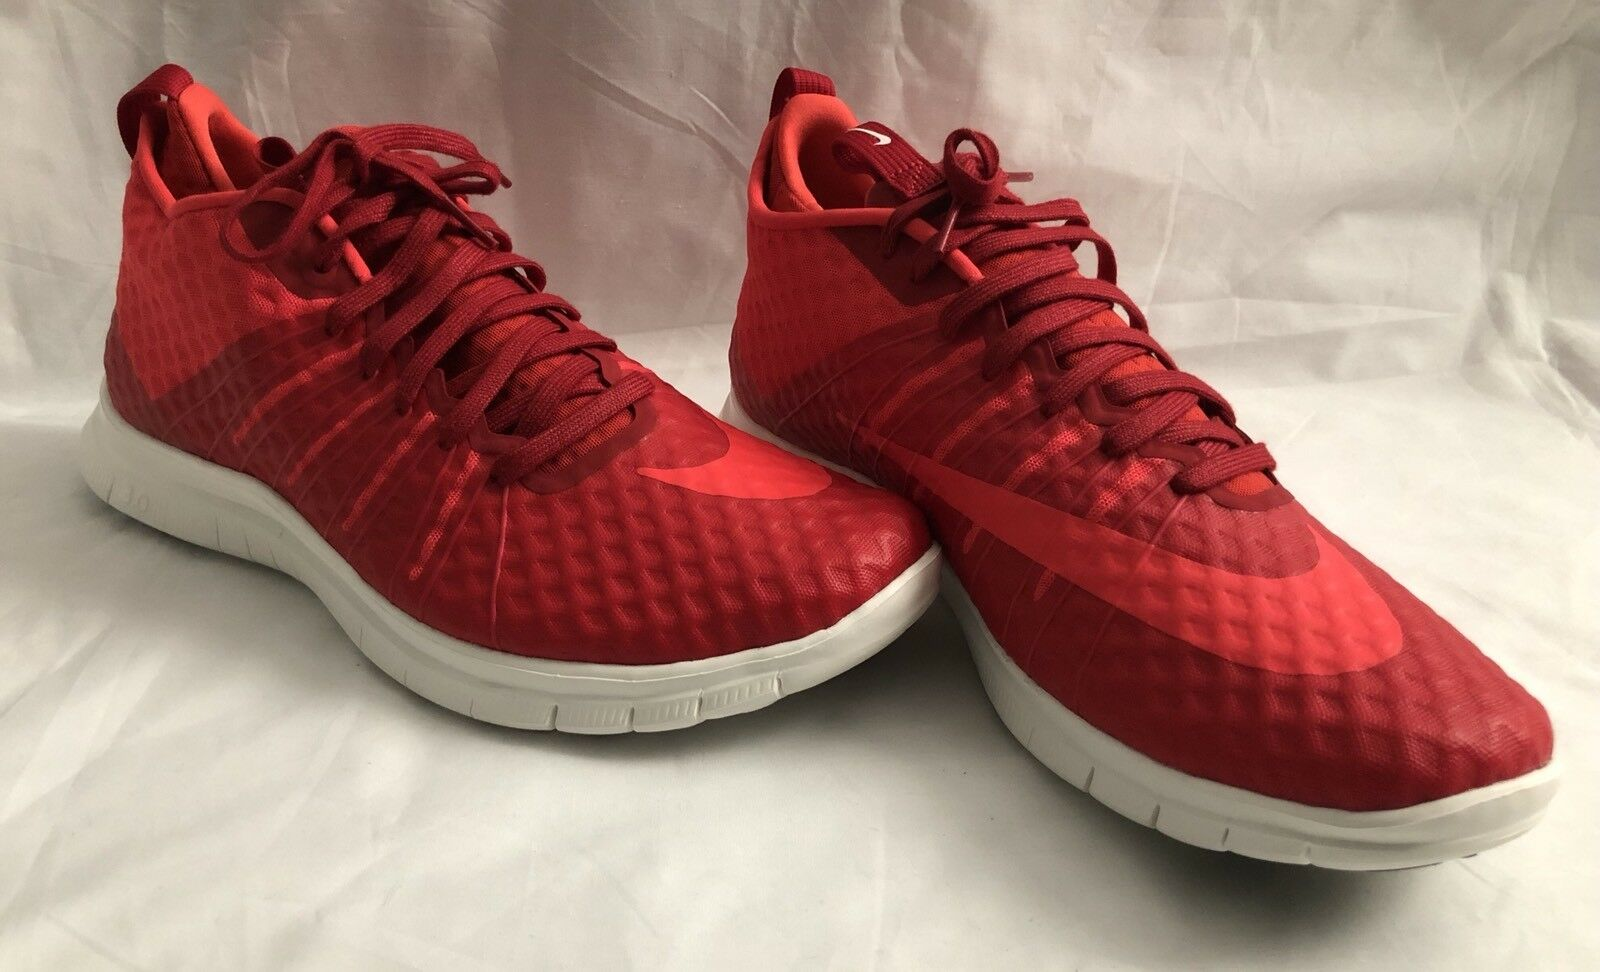 The latest discount shoes for men and women Nike Free Hypervenom 2 FS Red Crimson Athletic Sneaker Men's Comfortable